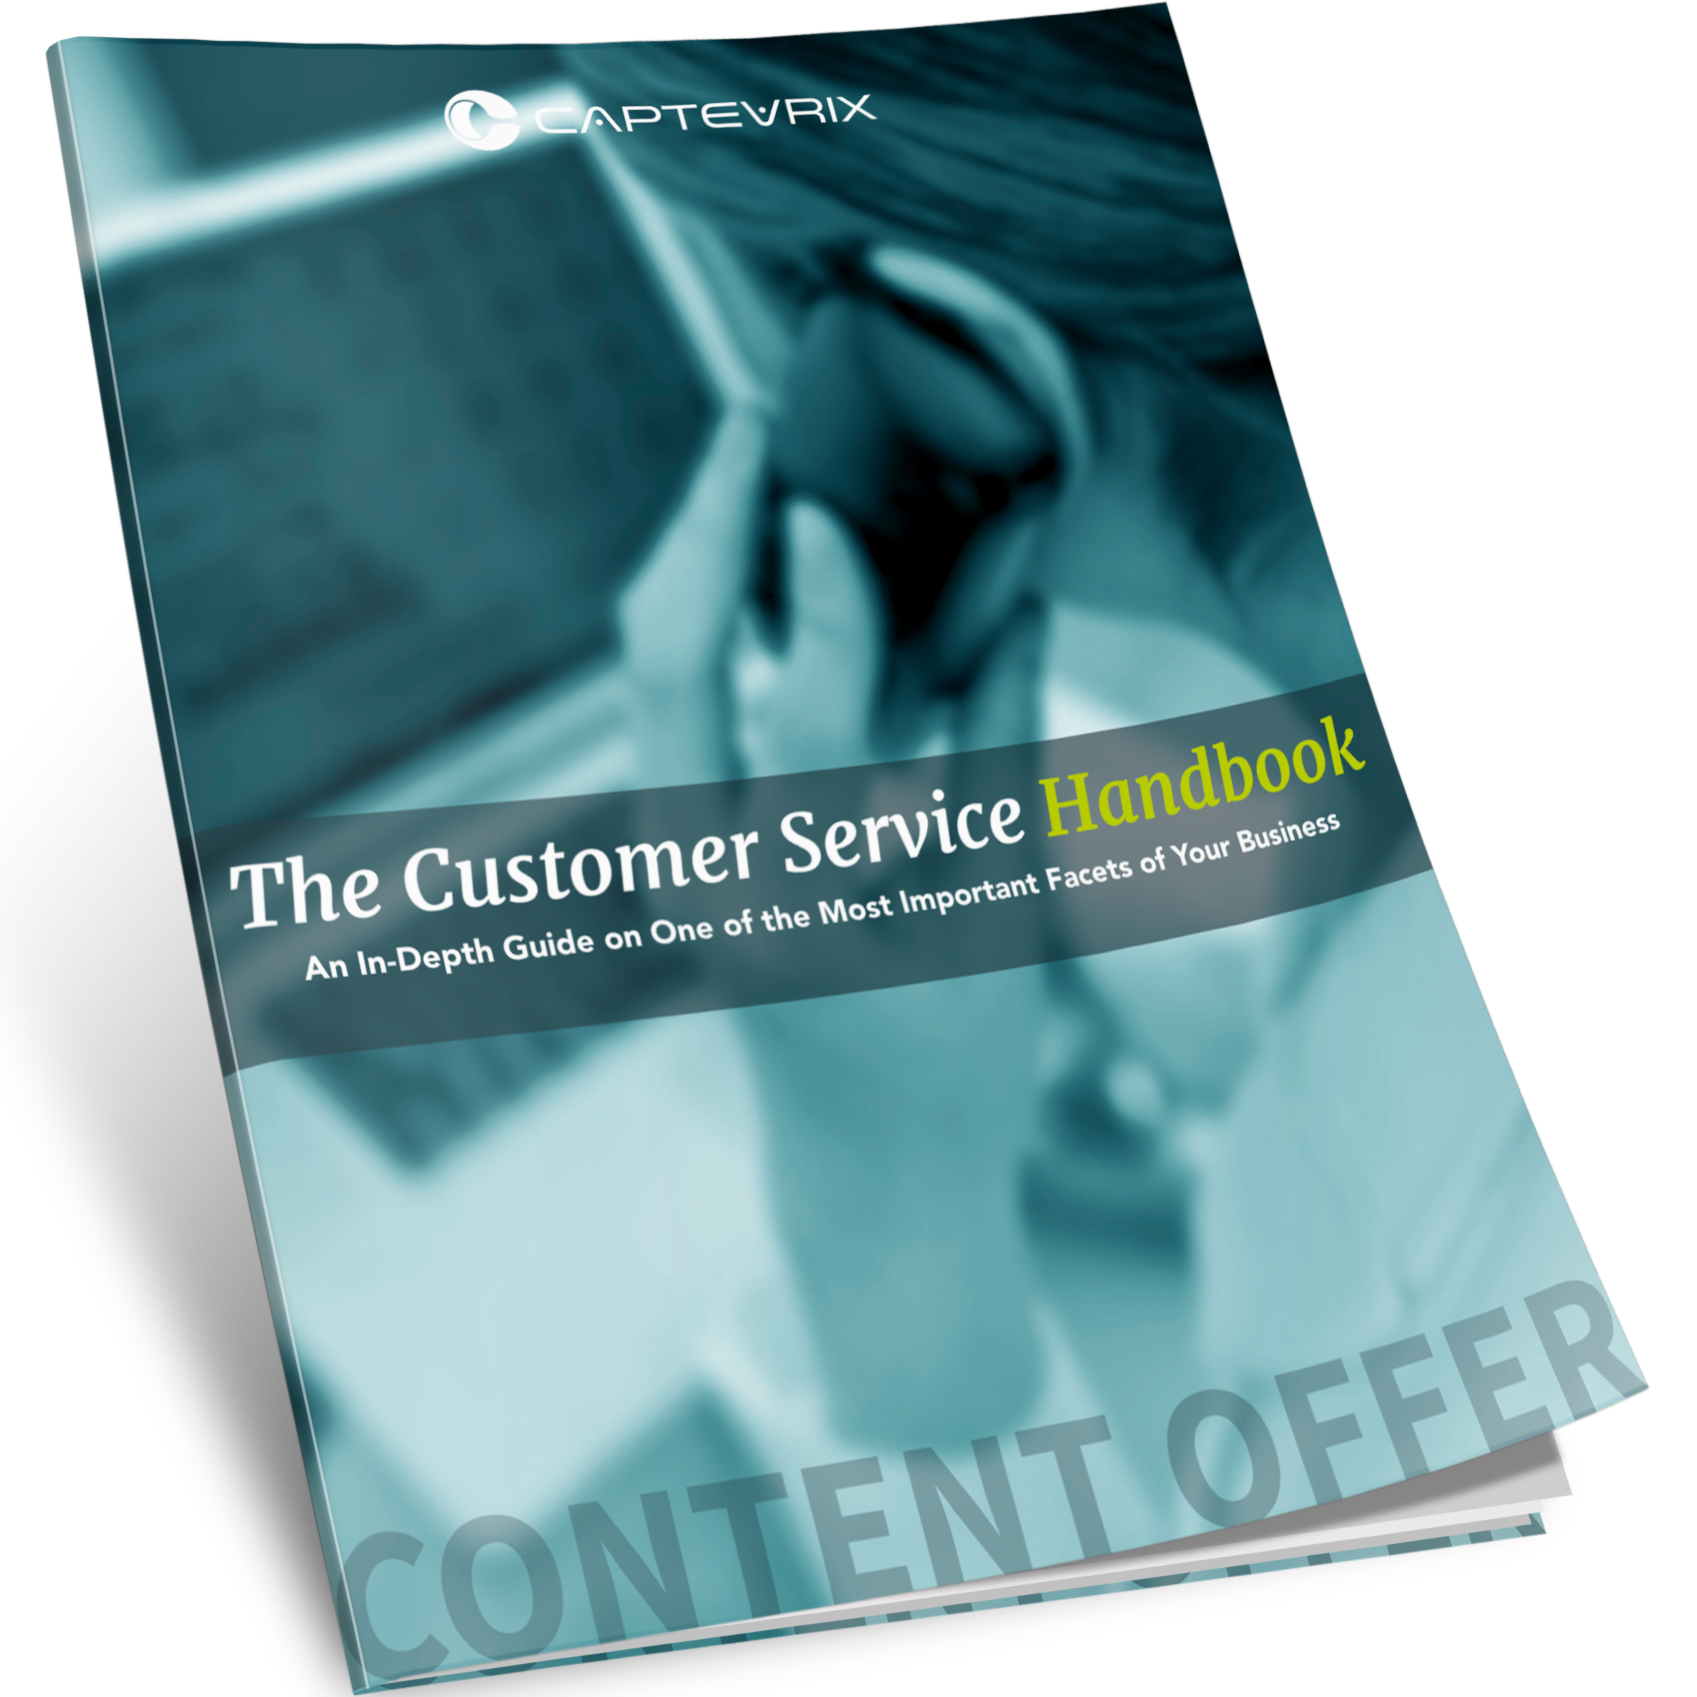 CustomerServiceOfferCover-2